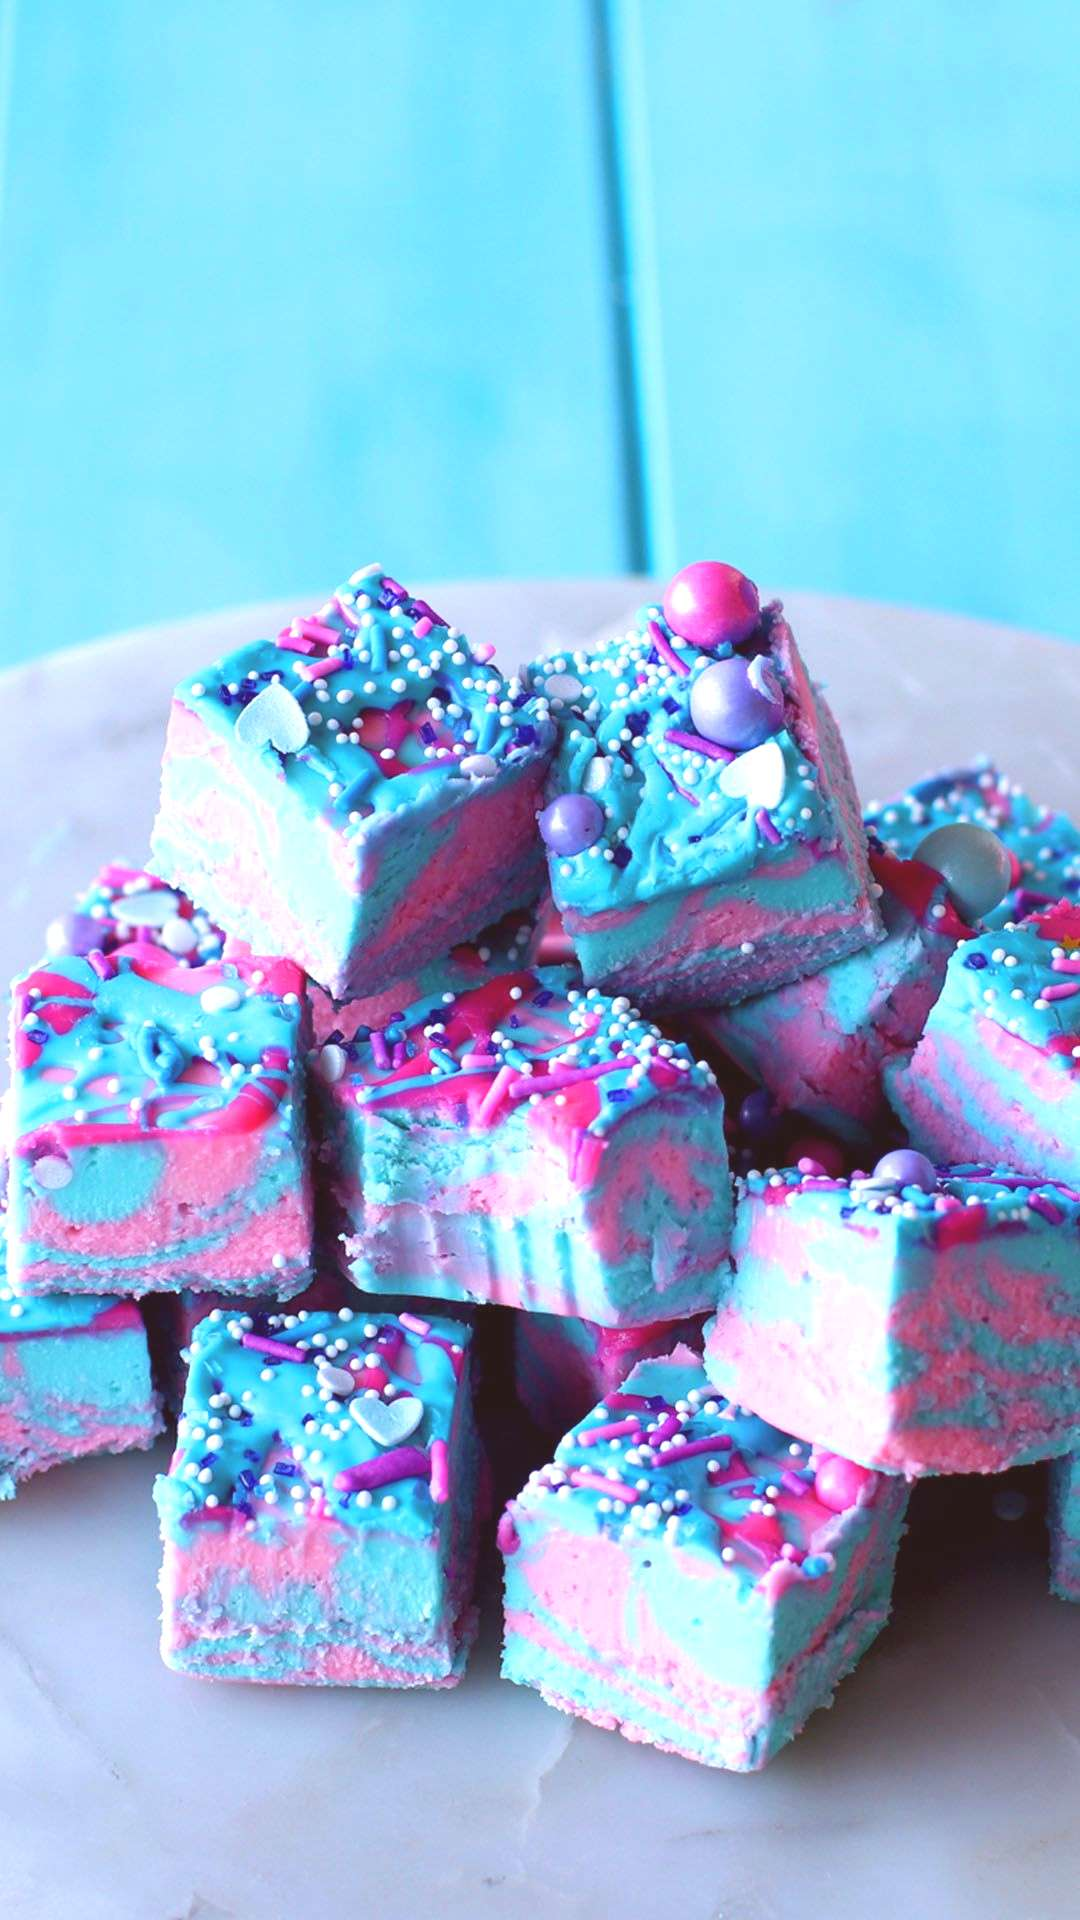 Cotton Candy Fudge This cosmically colorful cotton candy fudge will no doubt satisfy your sweet too